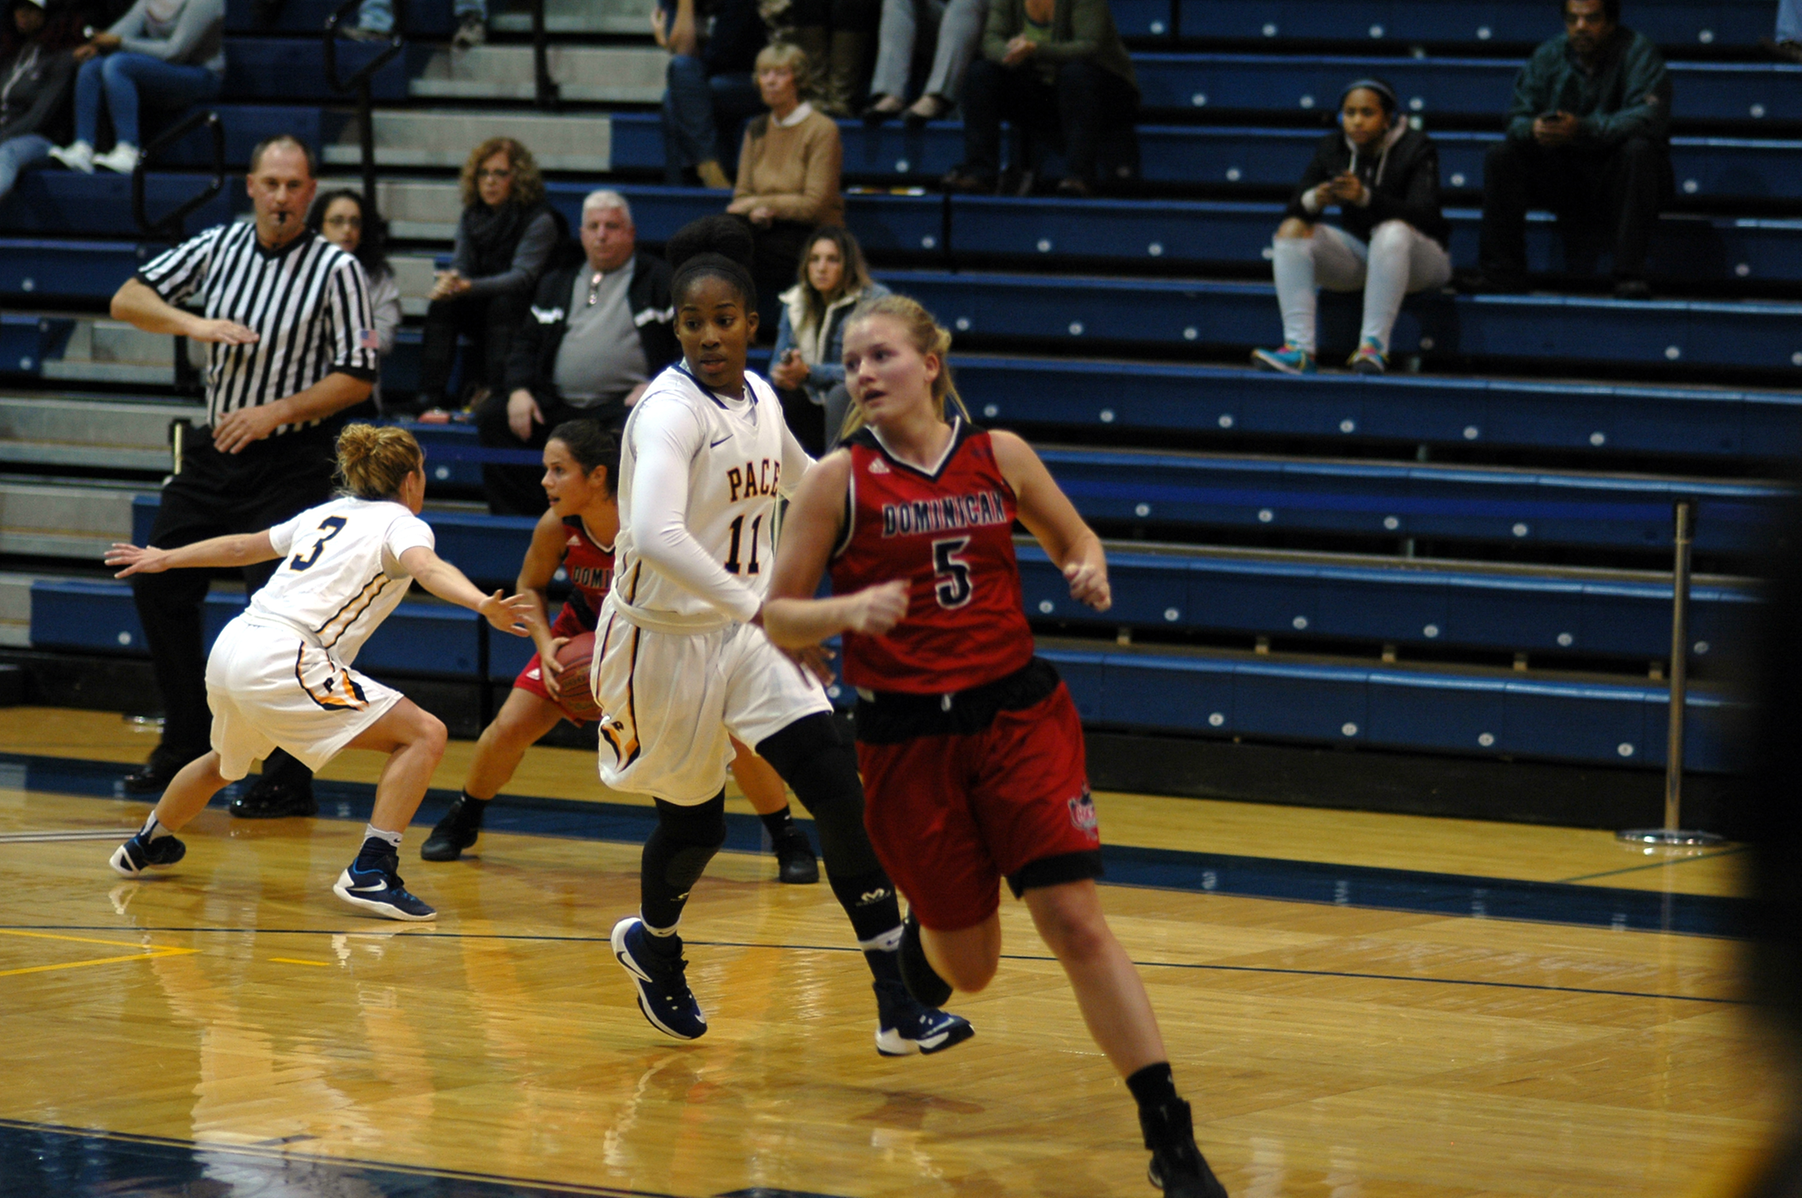 Senior guard Jacqueline Rywalt who grabbed four rebounds and two assists in the loss to SCSU.